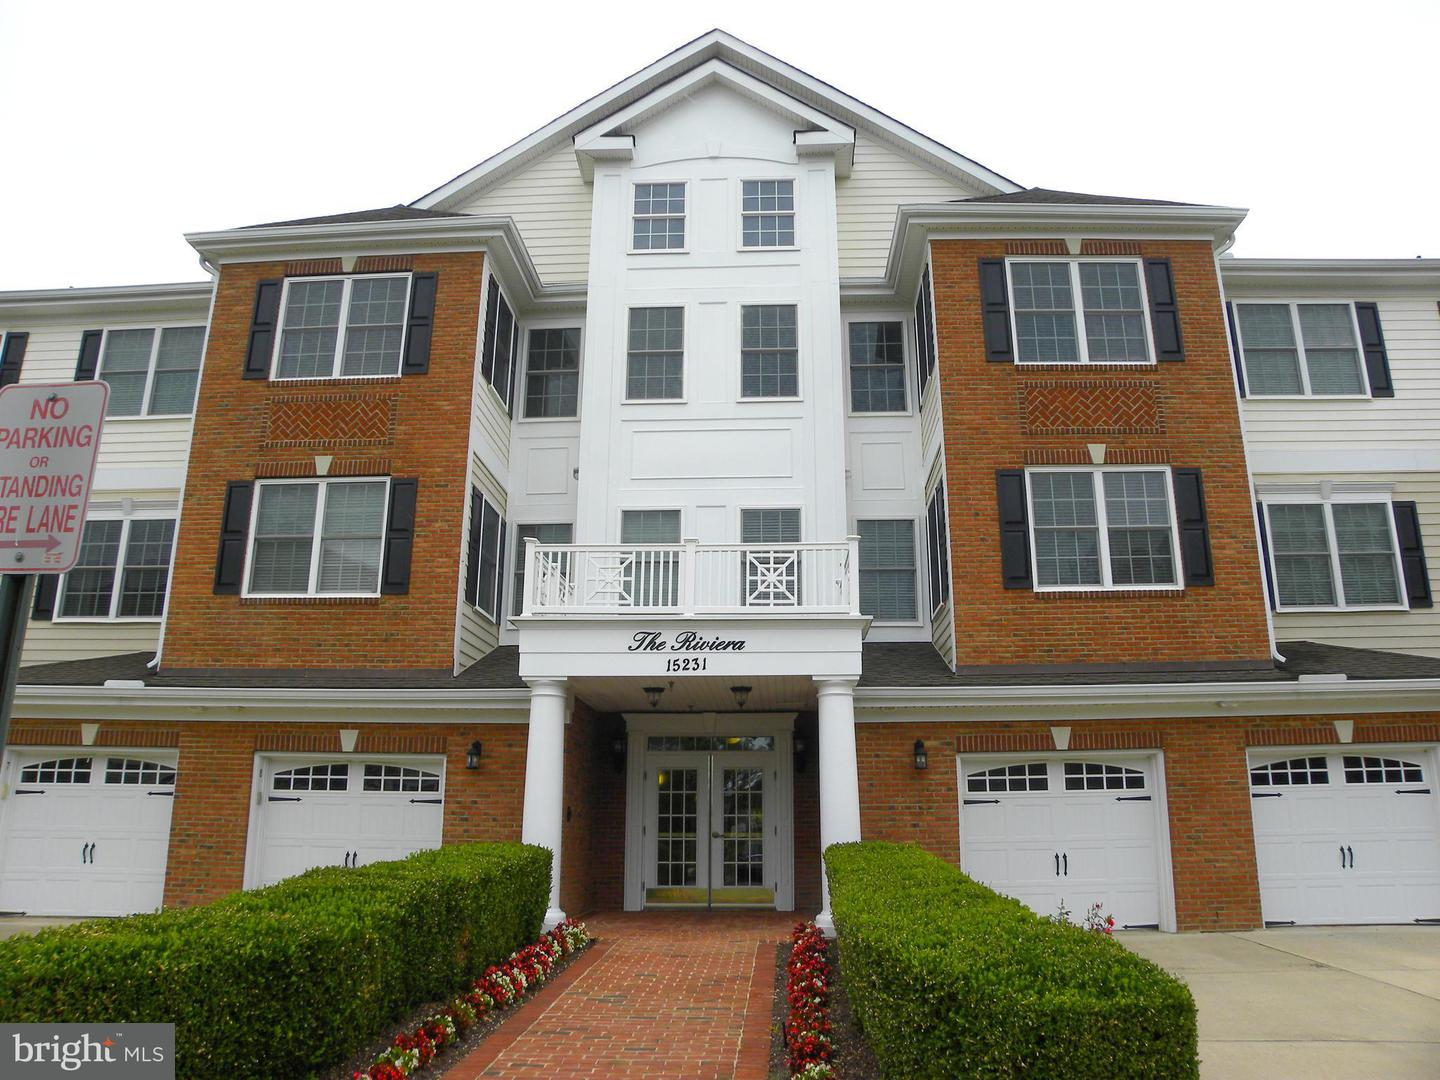 Other Residential for Rent at 15231 Royal Crest Dr #305 Haymarket, Virginia 20169 United States